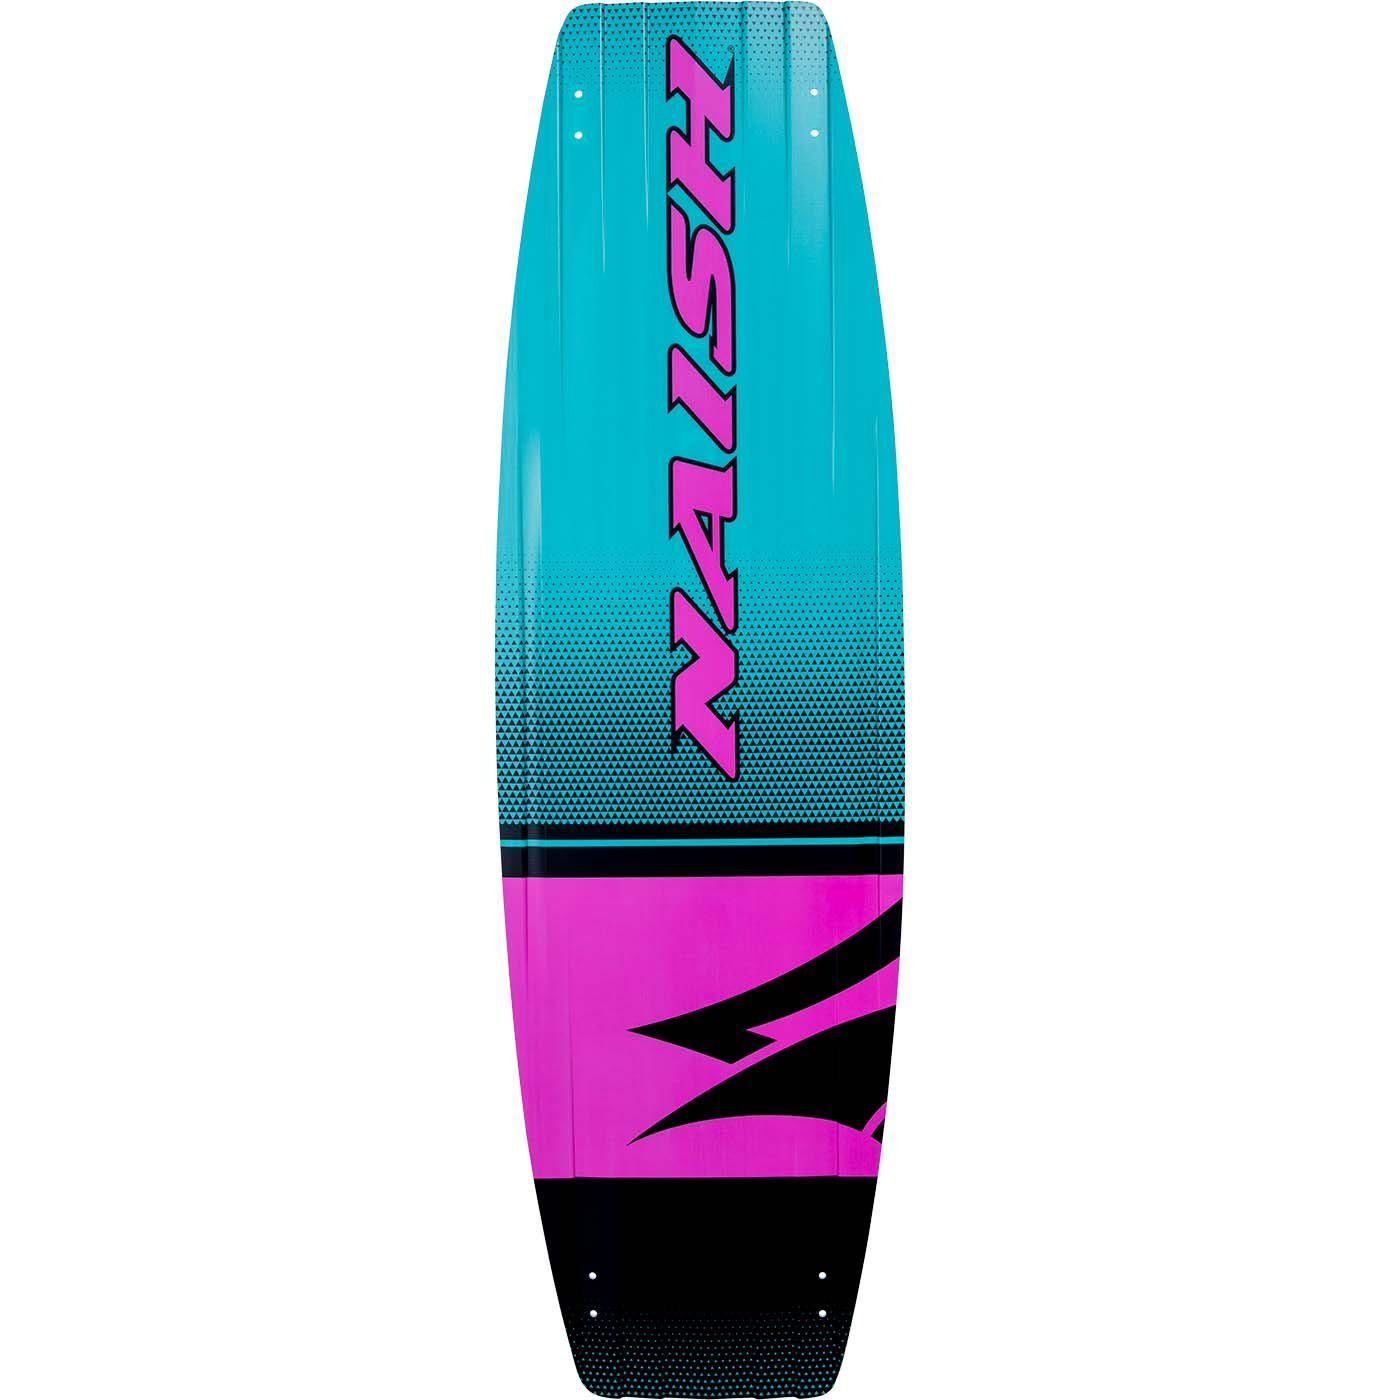 2020 Naish Alana Twin Tip Kiteboard-Big Winds